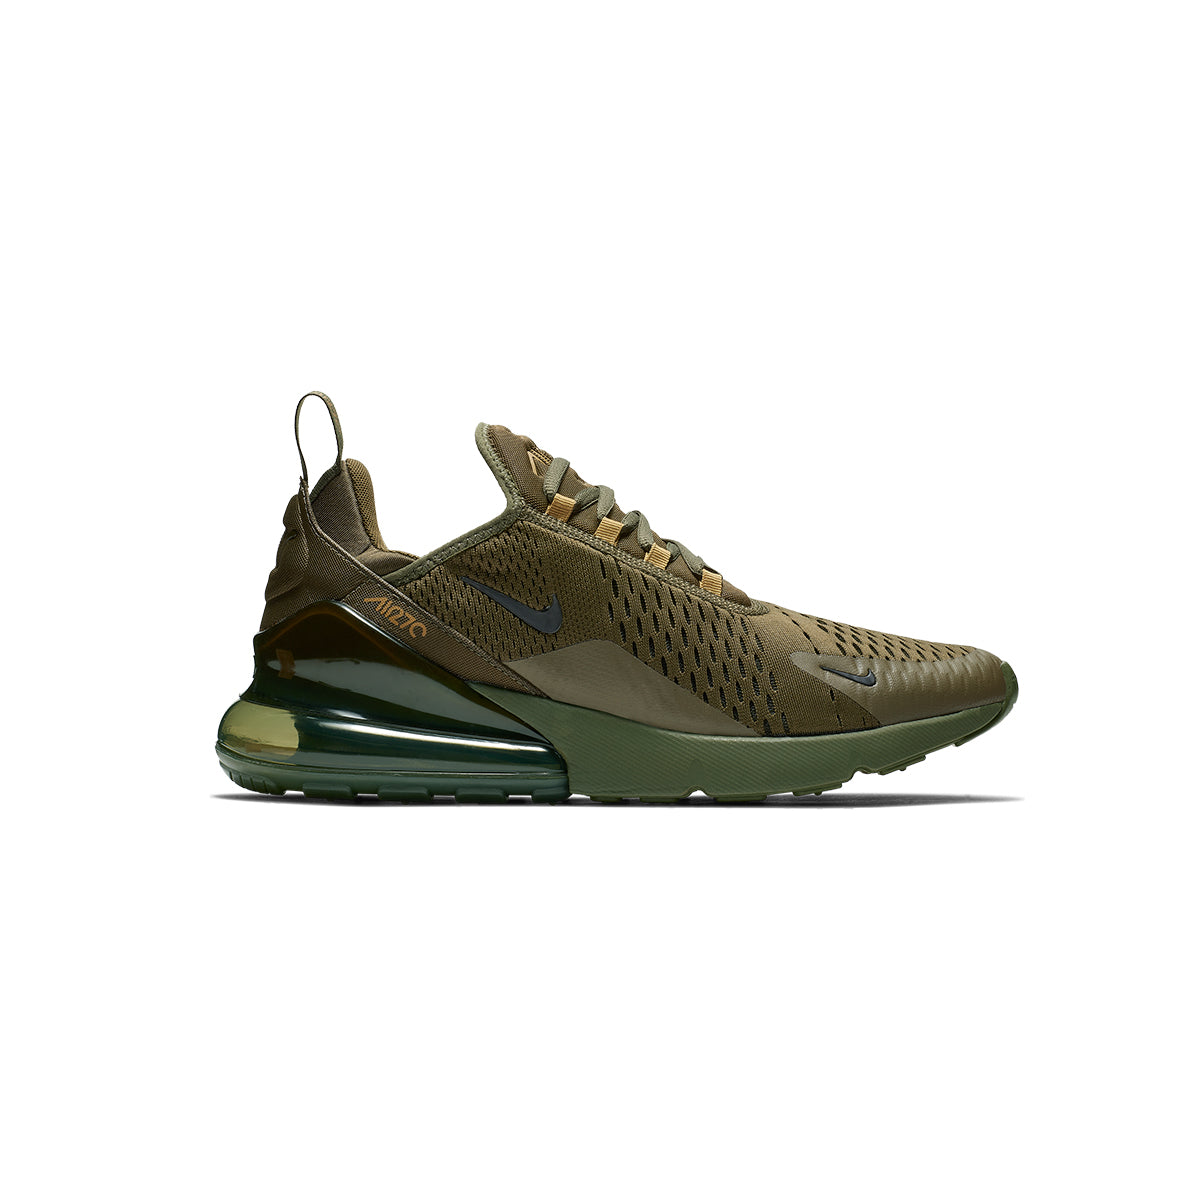 Nike Air Max 270 Medium OliveBlack Total Orange White For Sale